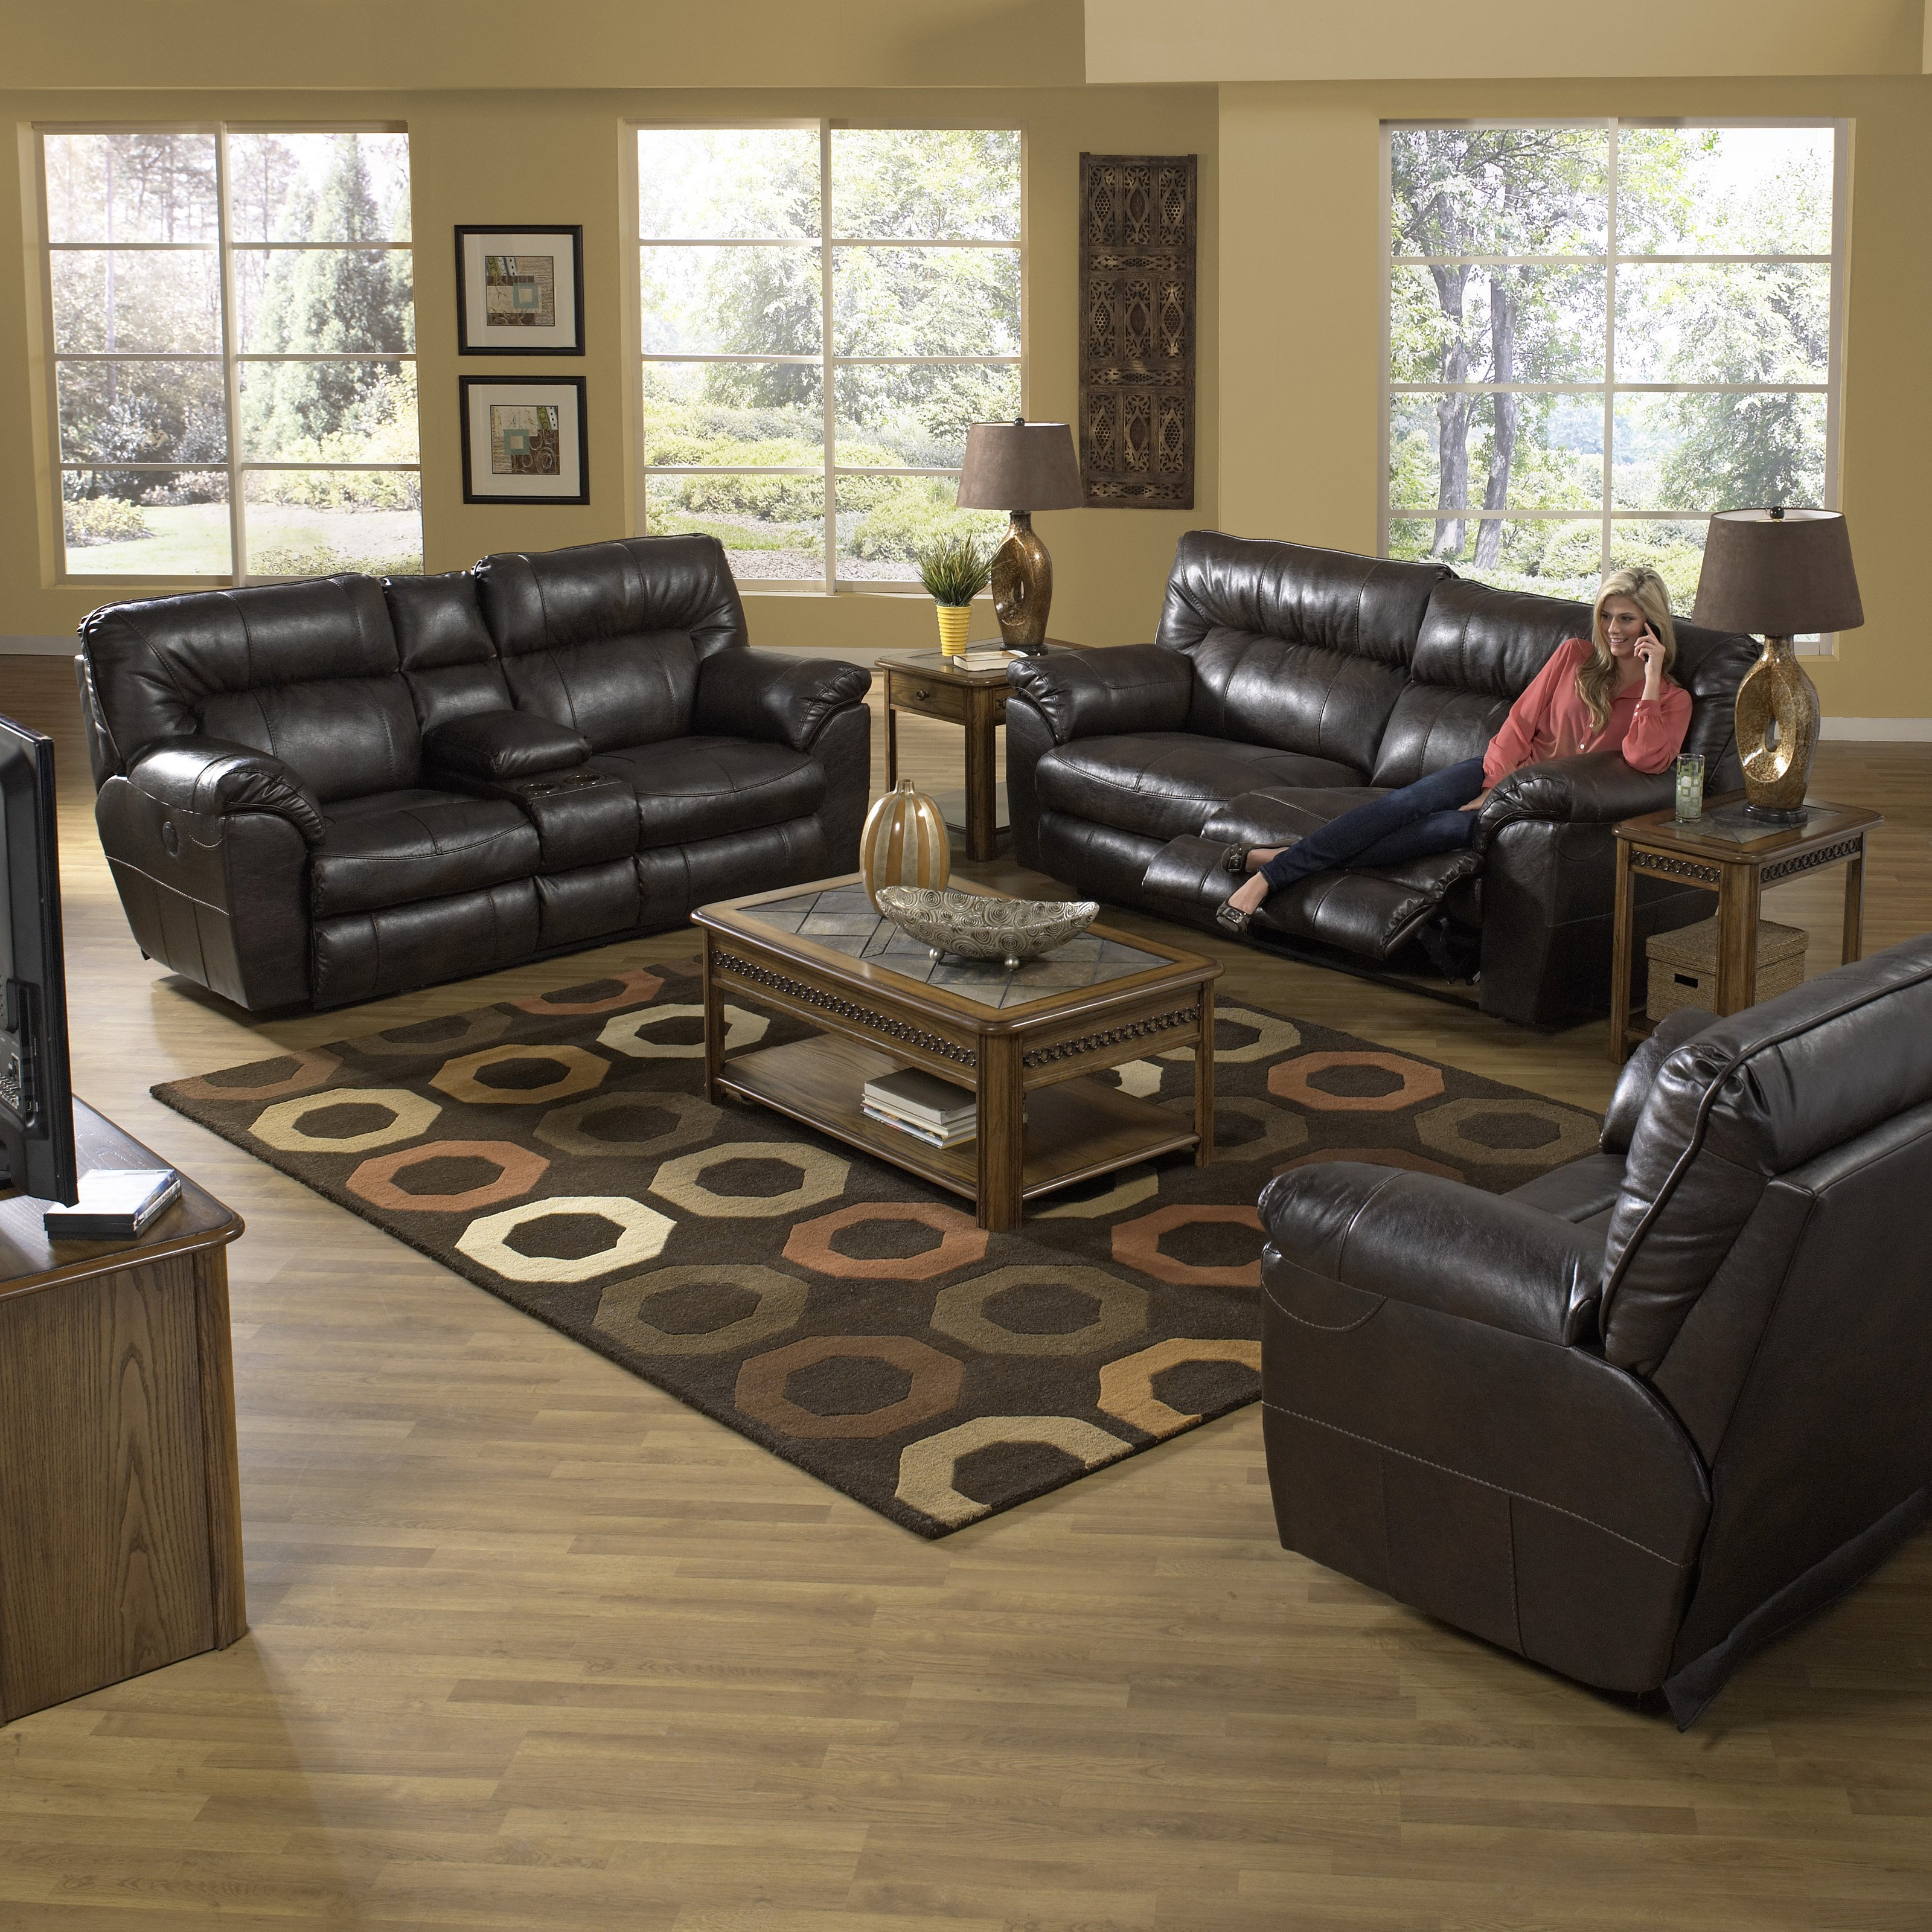 Catnapper Nolan Leather Reclining Sofa Set - Godiva